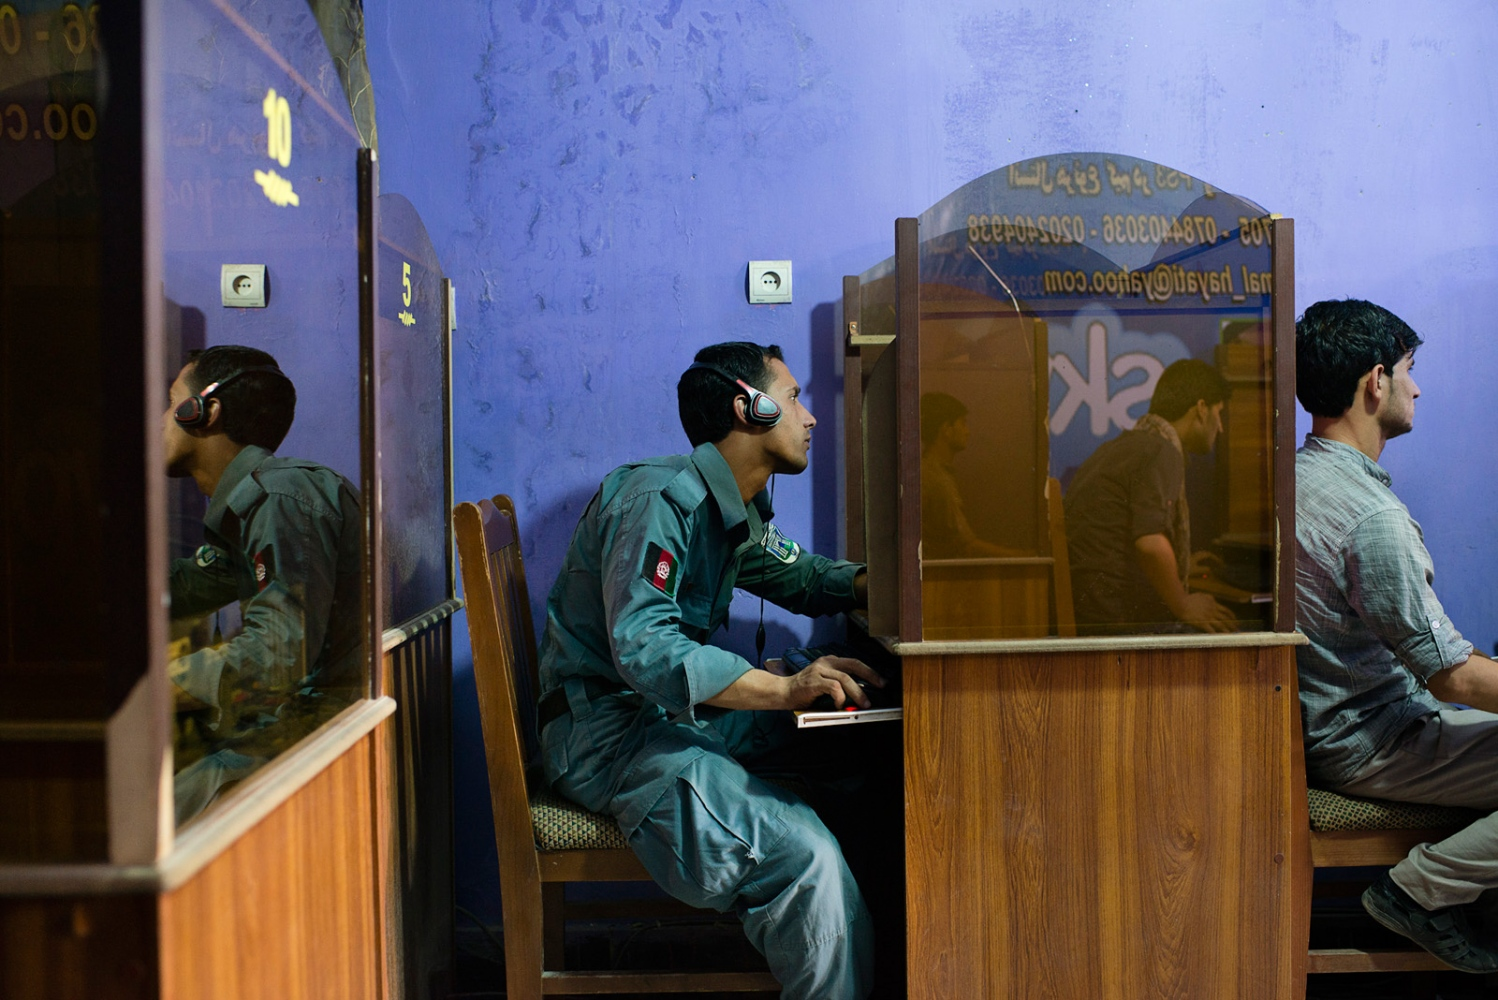 KABUL, AFGHANISTAN | 2014-08-10 | An young ANP officer uses a computer on his spare time to check his Facebook account at an internet cafe in Goolaei, northern Kabul.